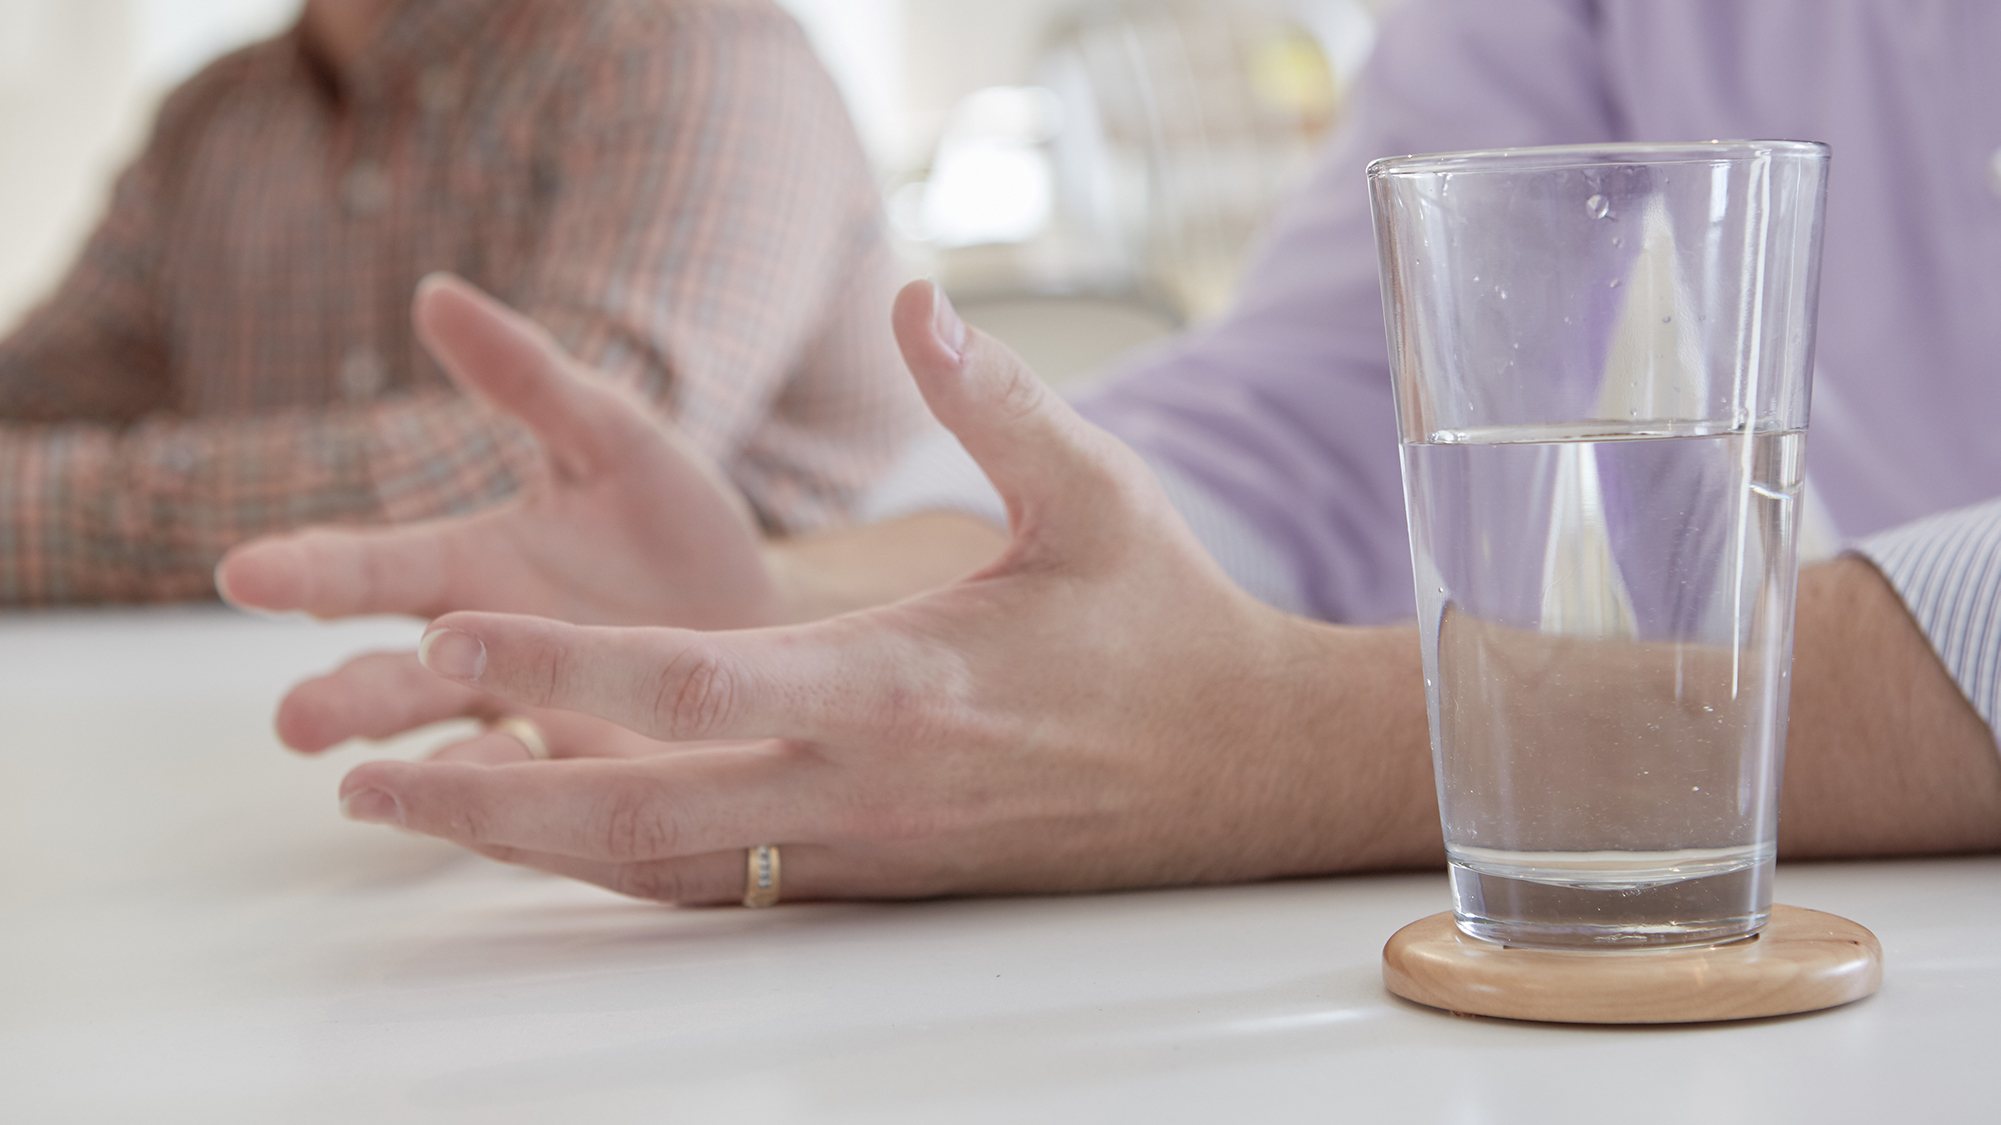 Photo of hands open palm up next to a glass of water.